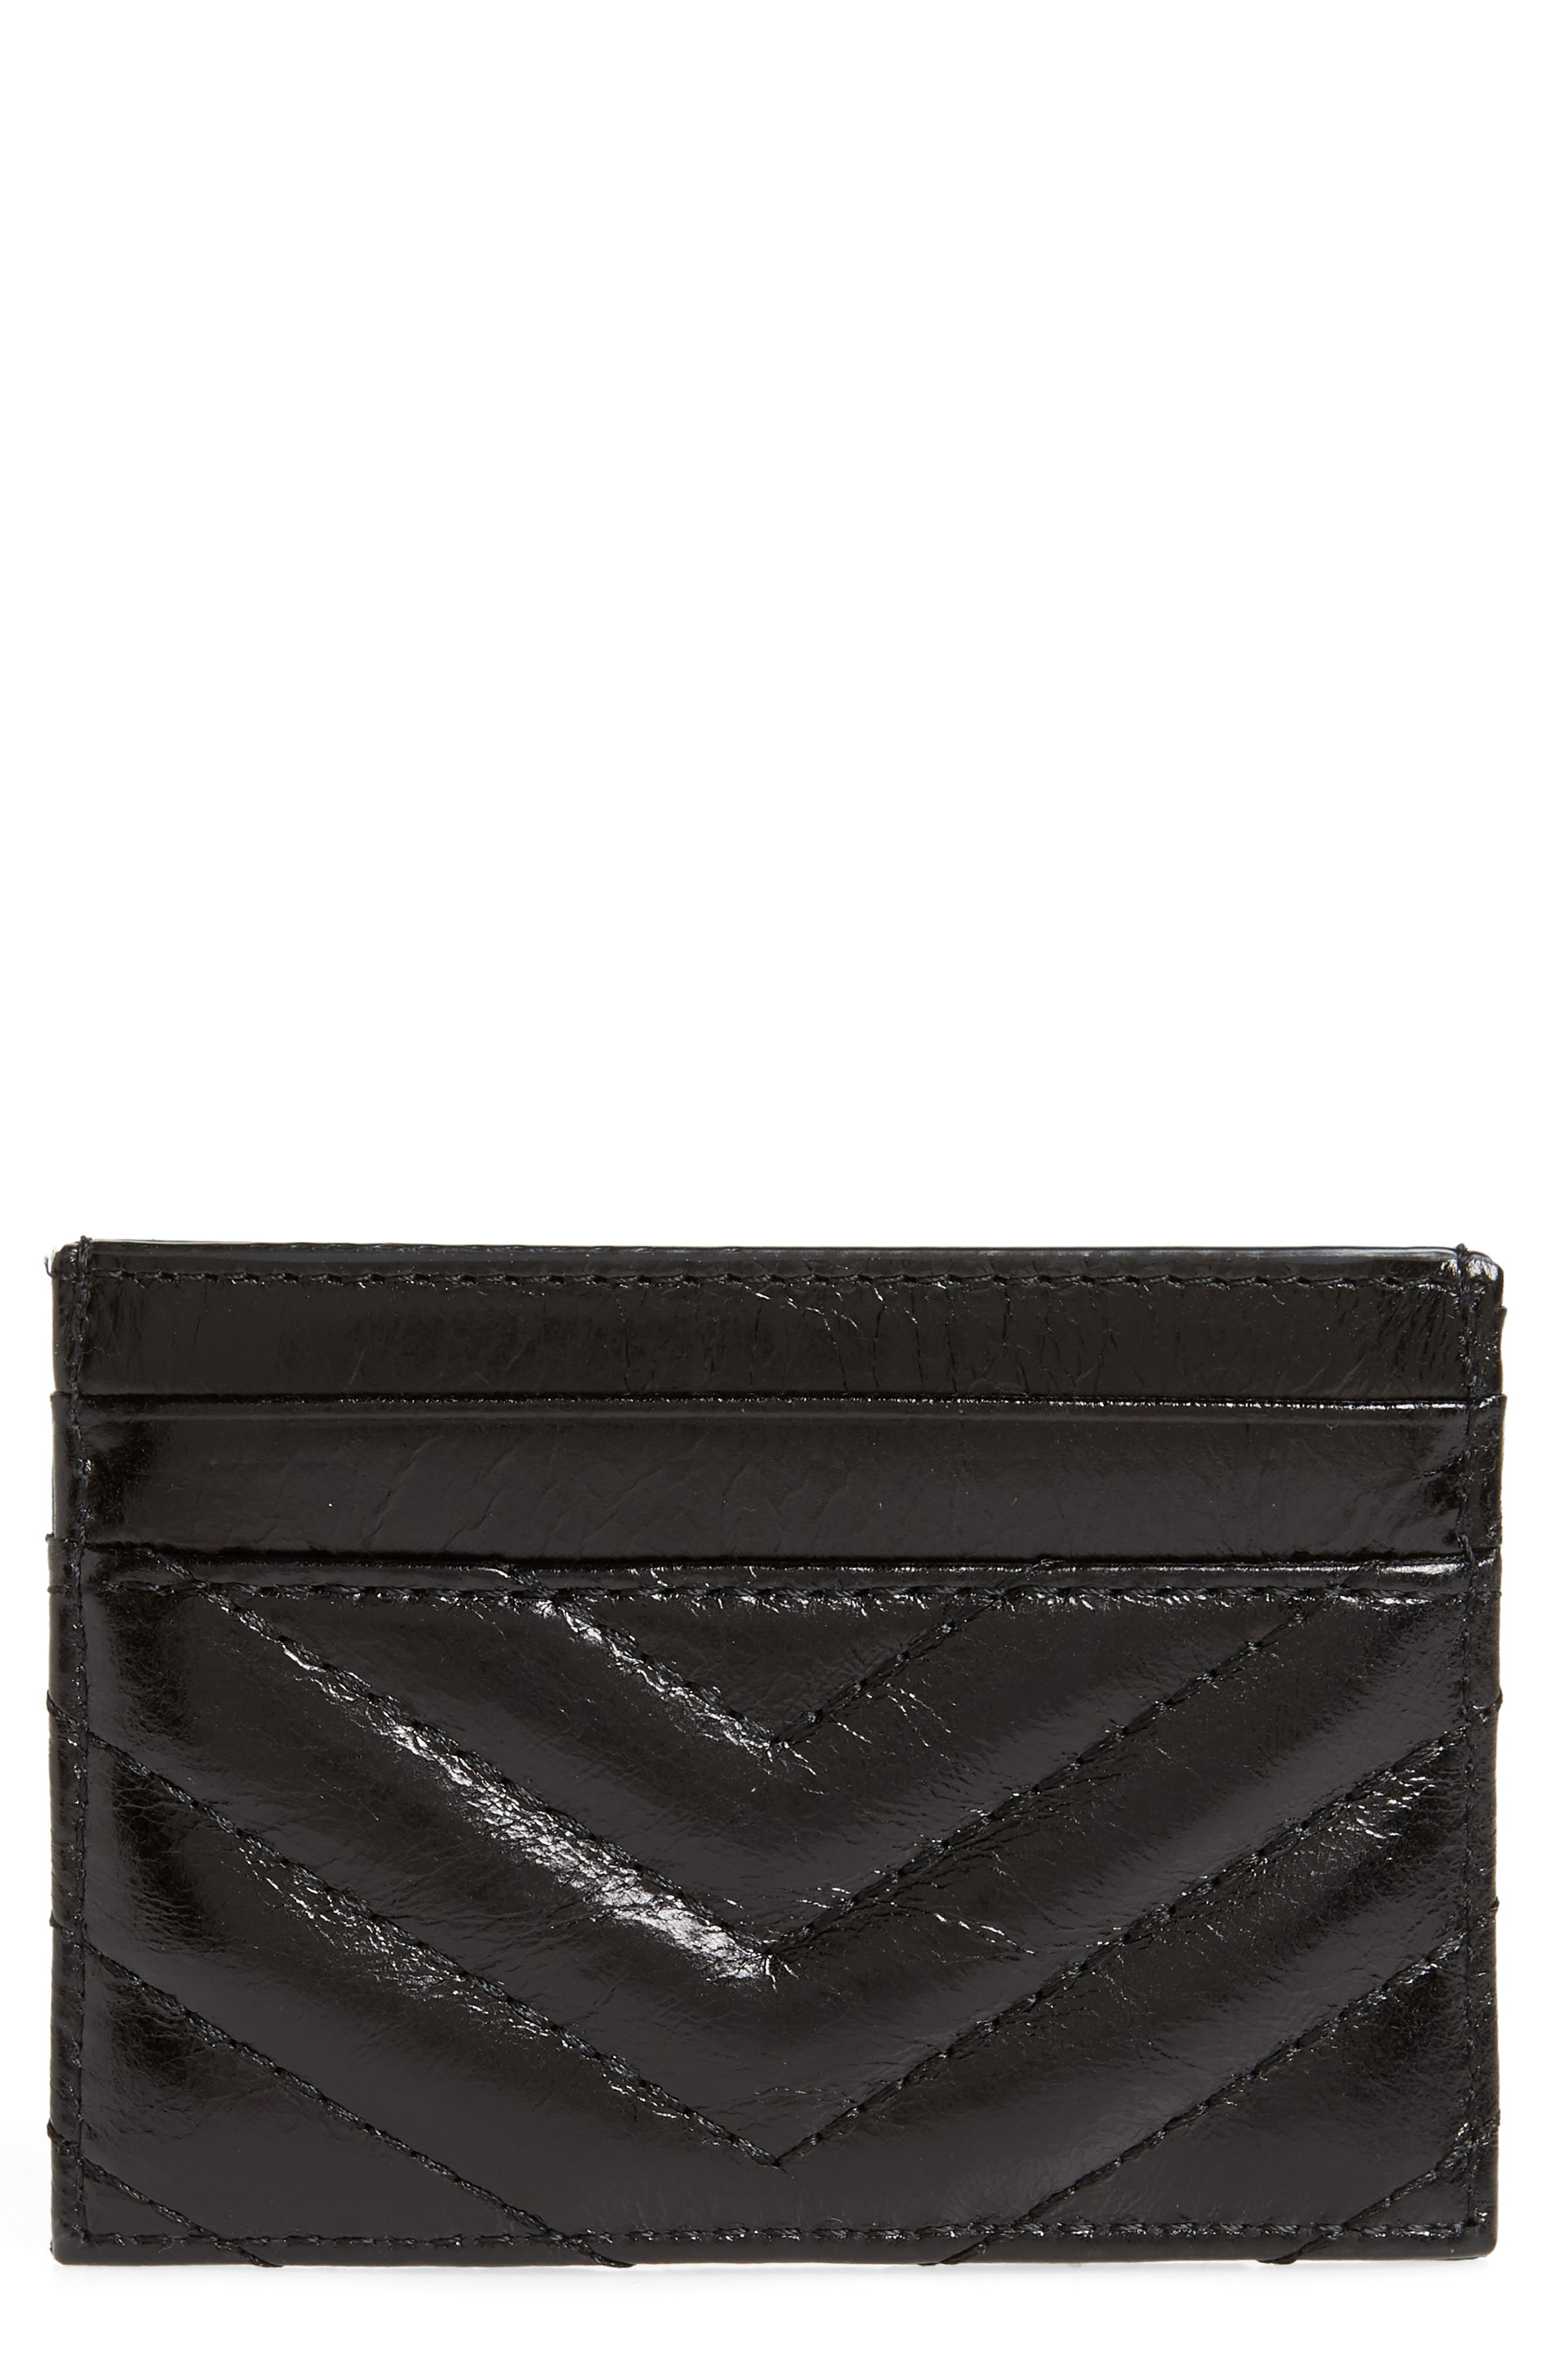 REBECCA MINKOFF, Edie Leather Card Case, Main thumbnail 1, color, 001